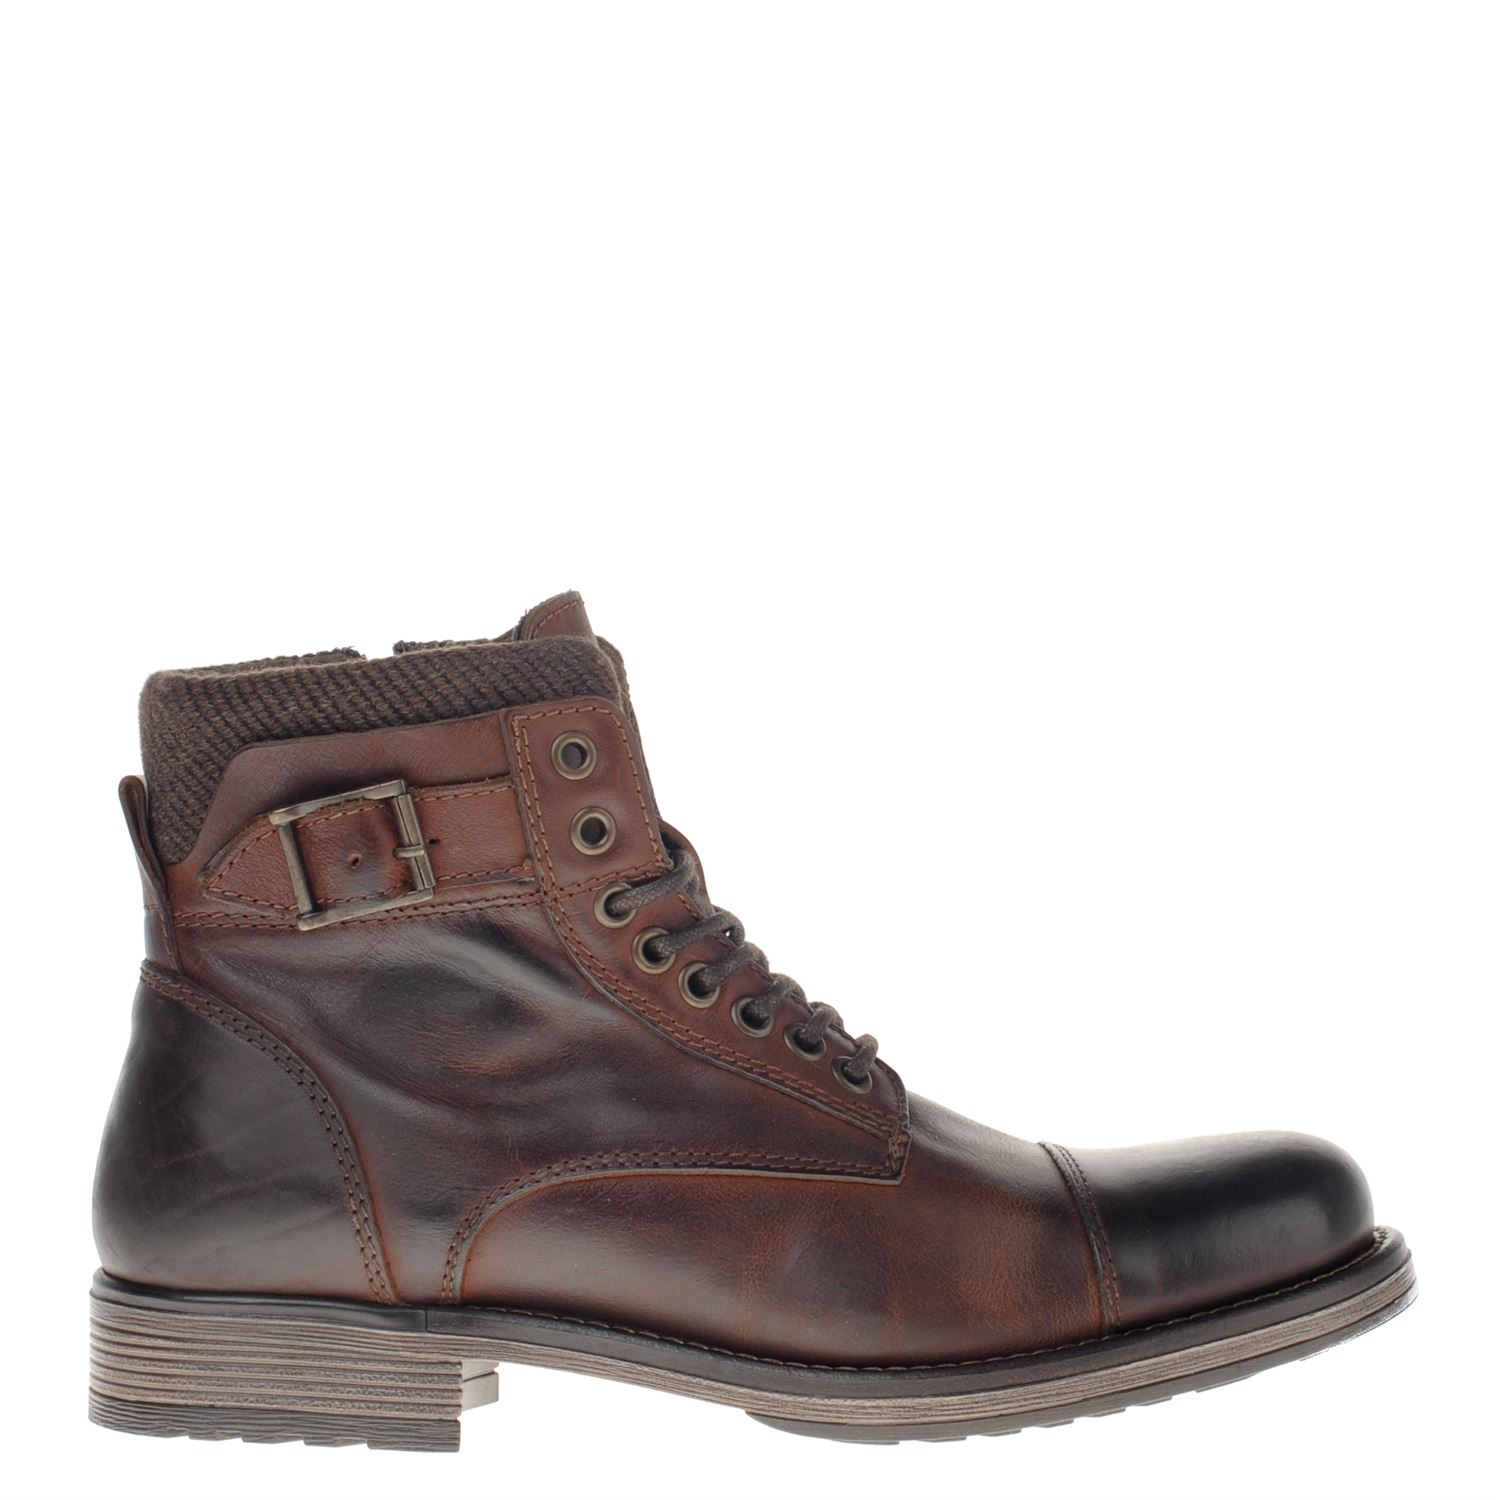 Jack & Jones Bottes Marron tEsnEE